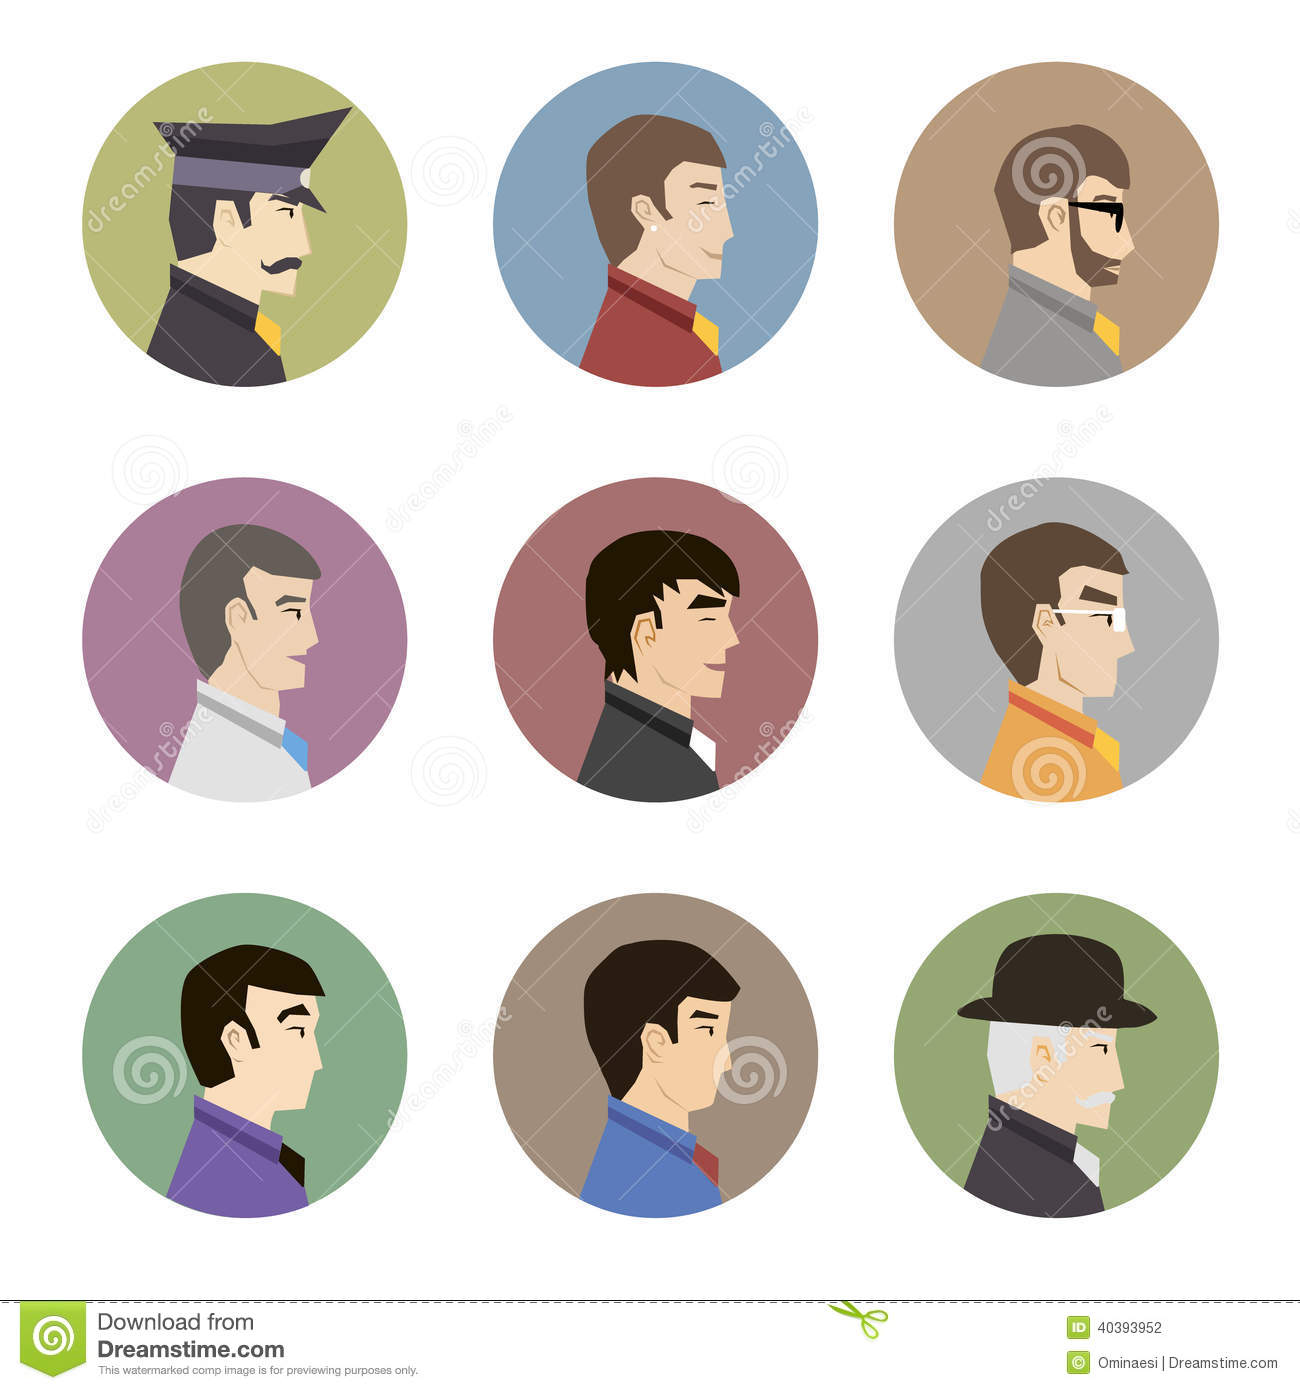 Flat Design Character Download : Avatar collection of stylish handsome male characters in